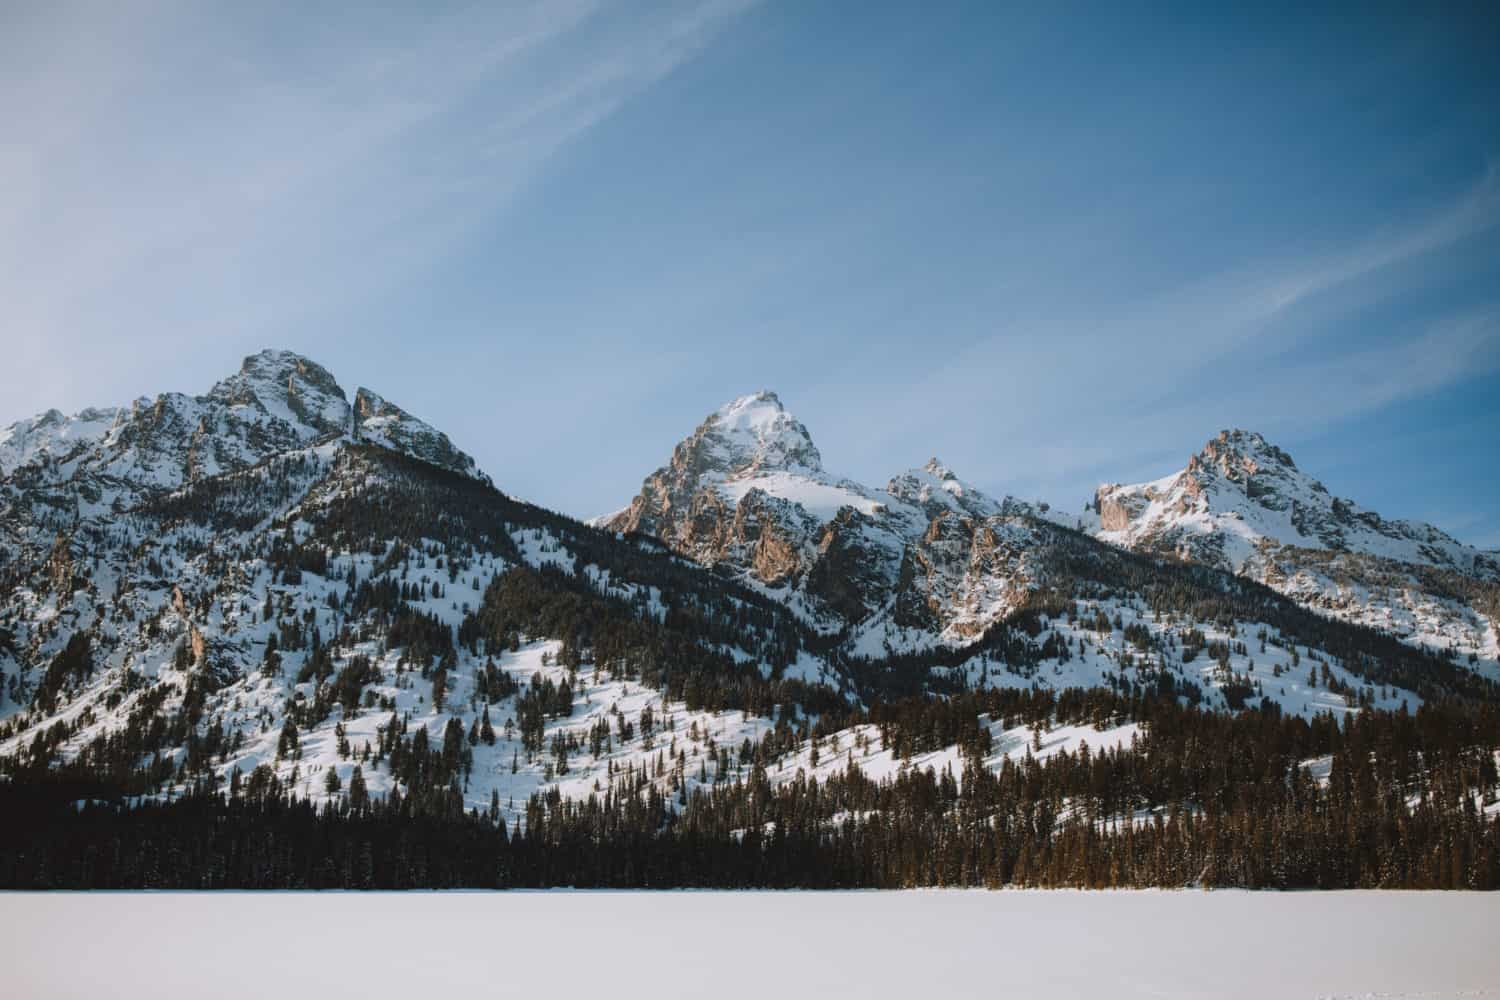 Views of the Grand Teton Mountain Range in Winter - TheMandagies.com